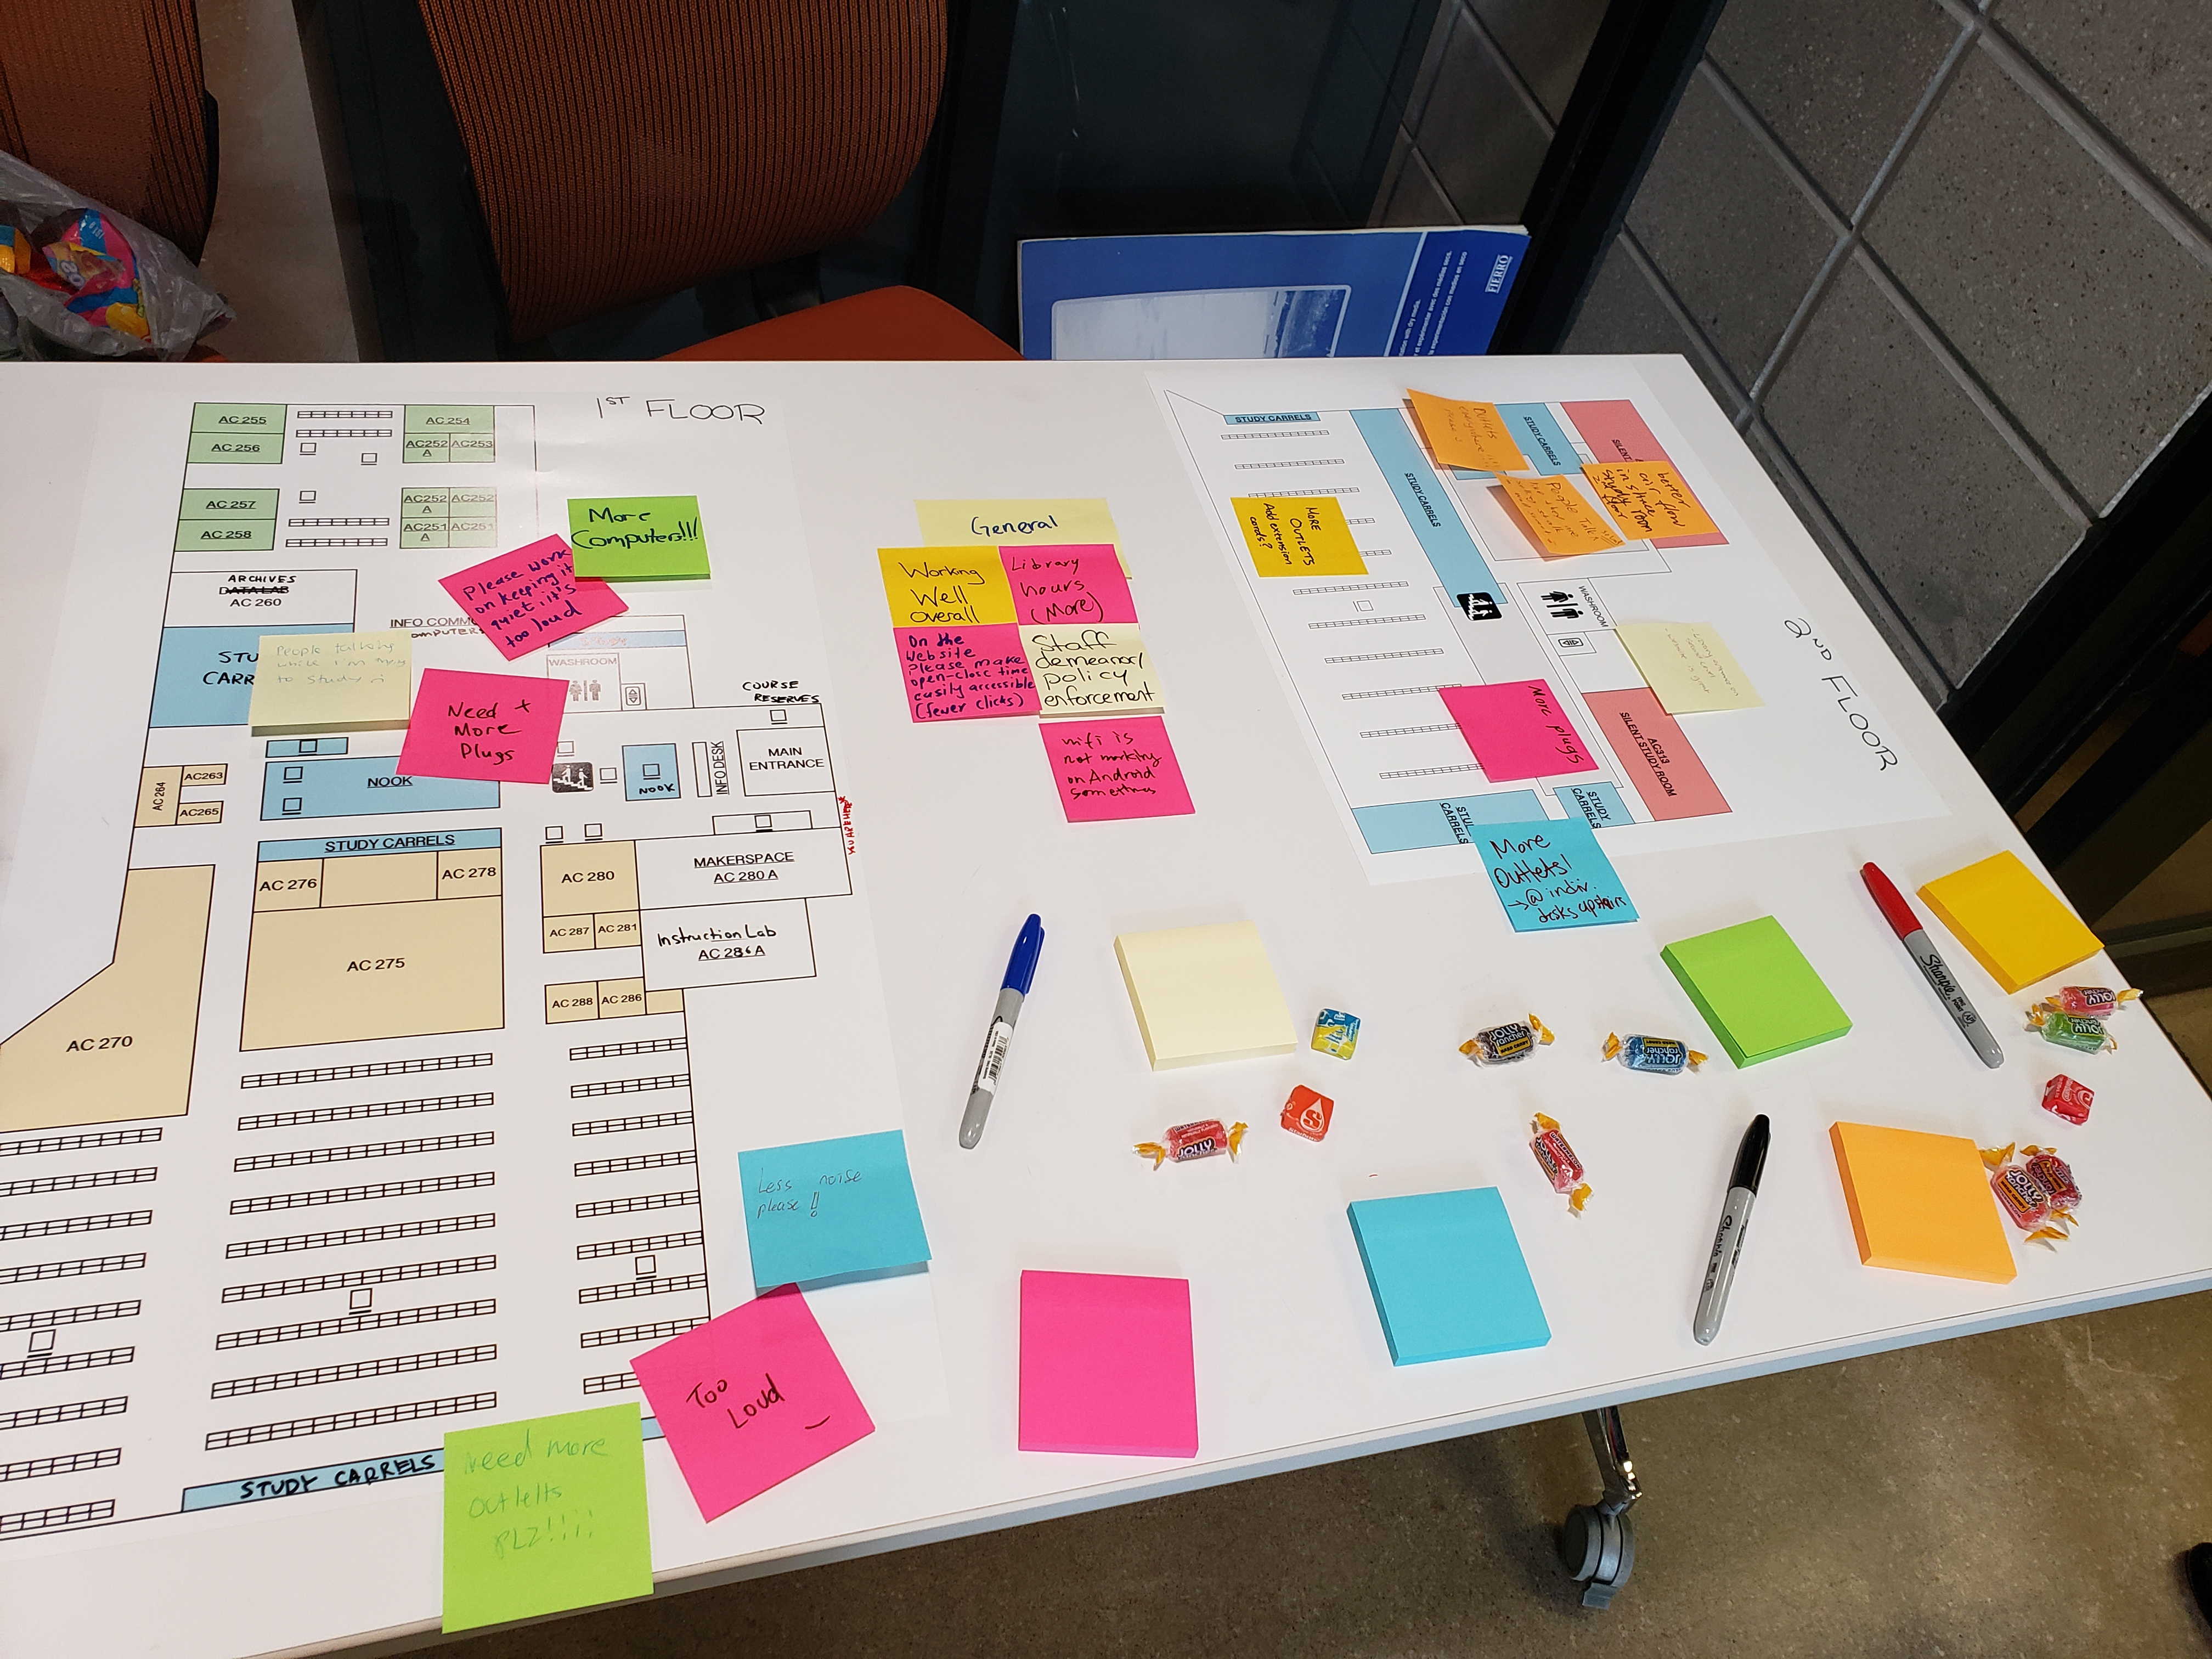 UX Pop-Up Table after 1 hour